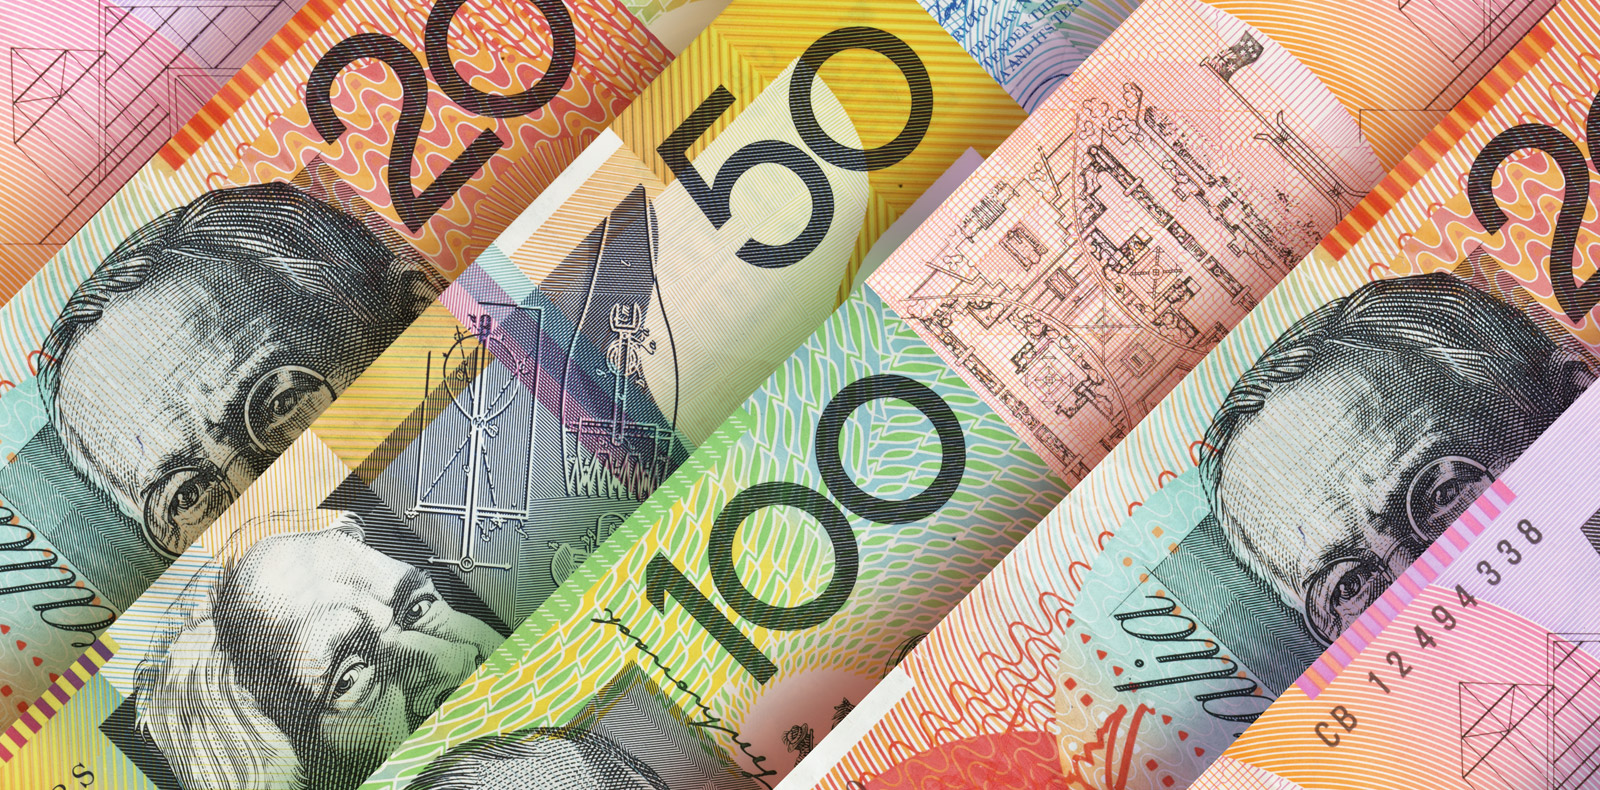 Events in China to Impact Australian Dollar